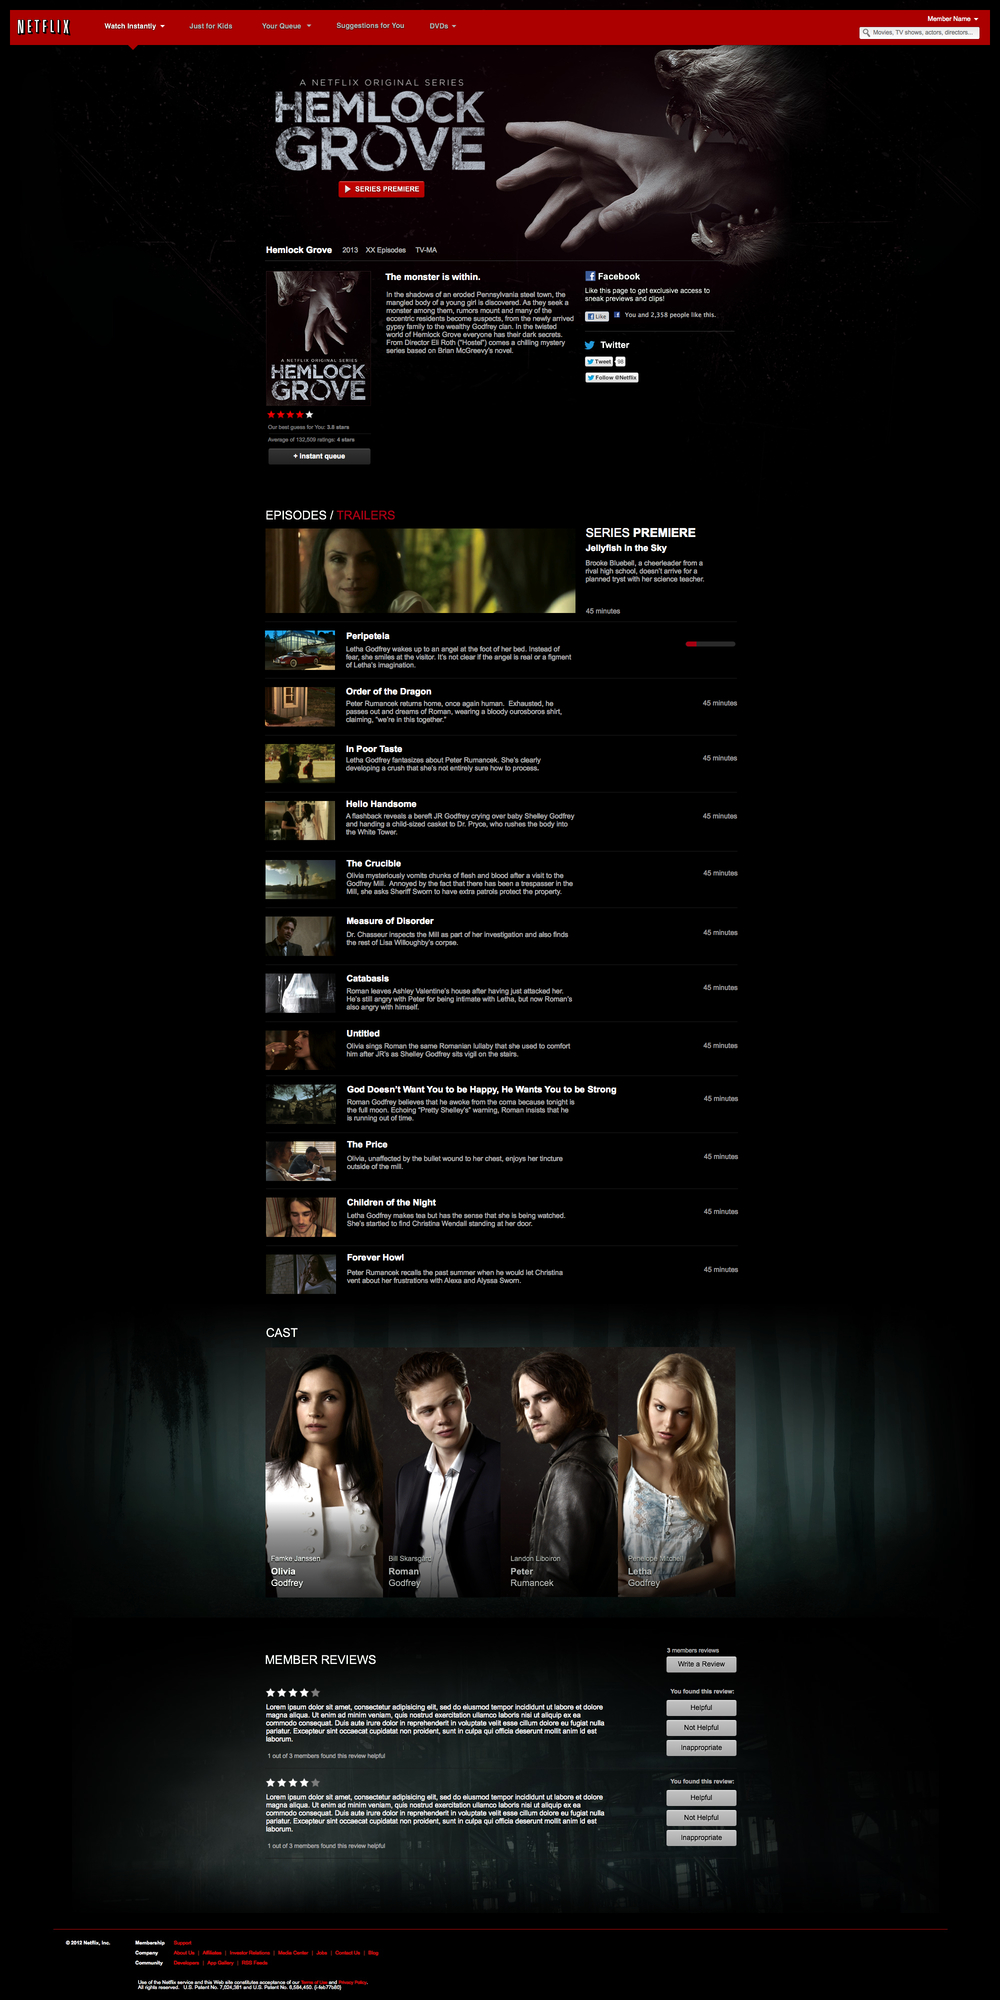 The Netflix.com experience for Hemlock Grove